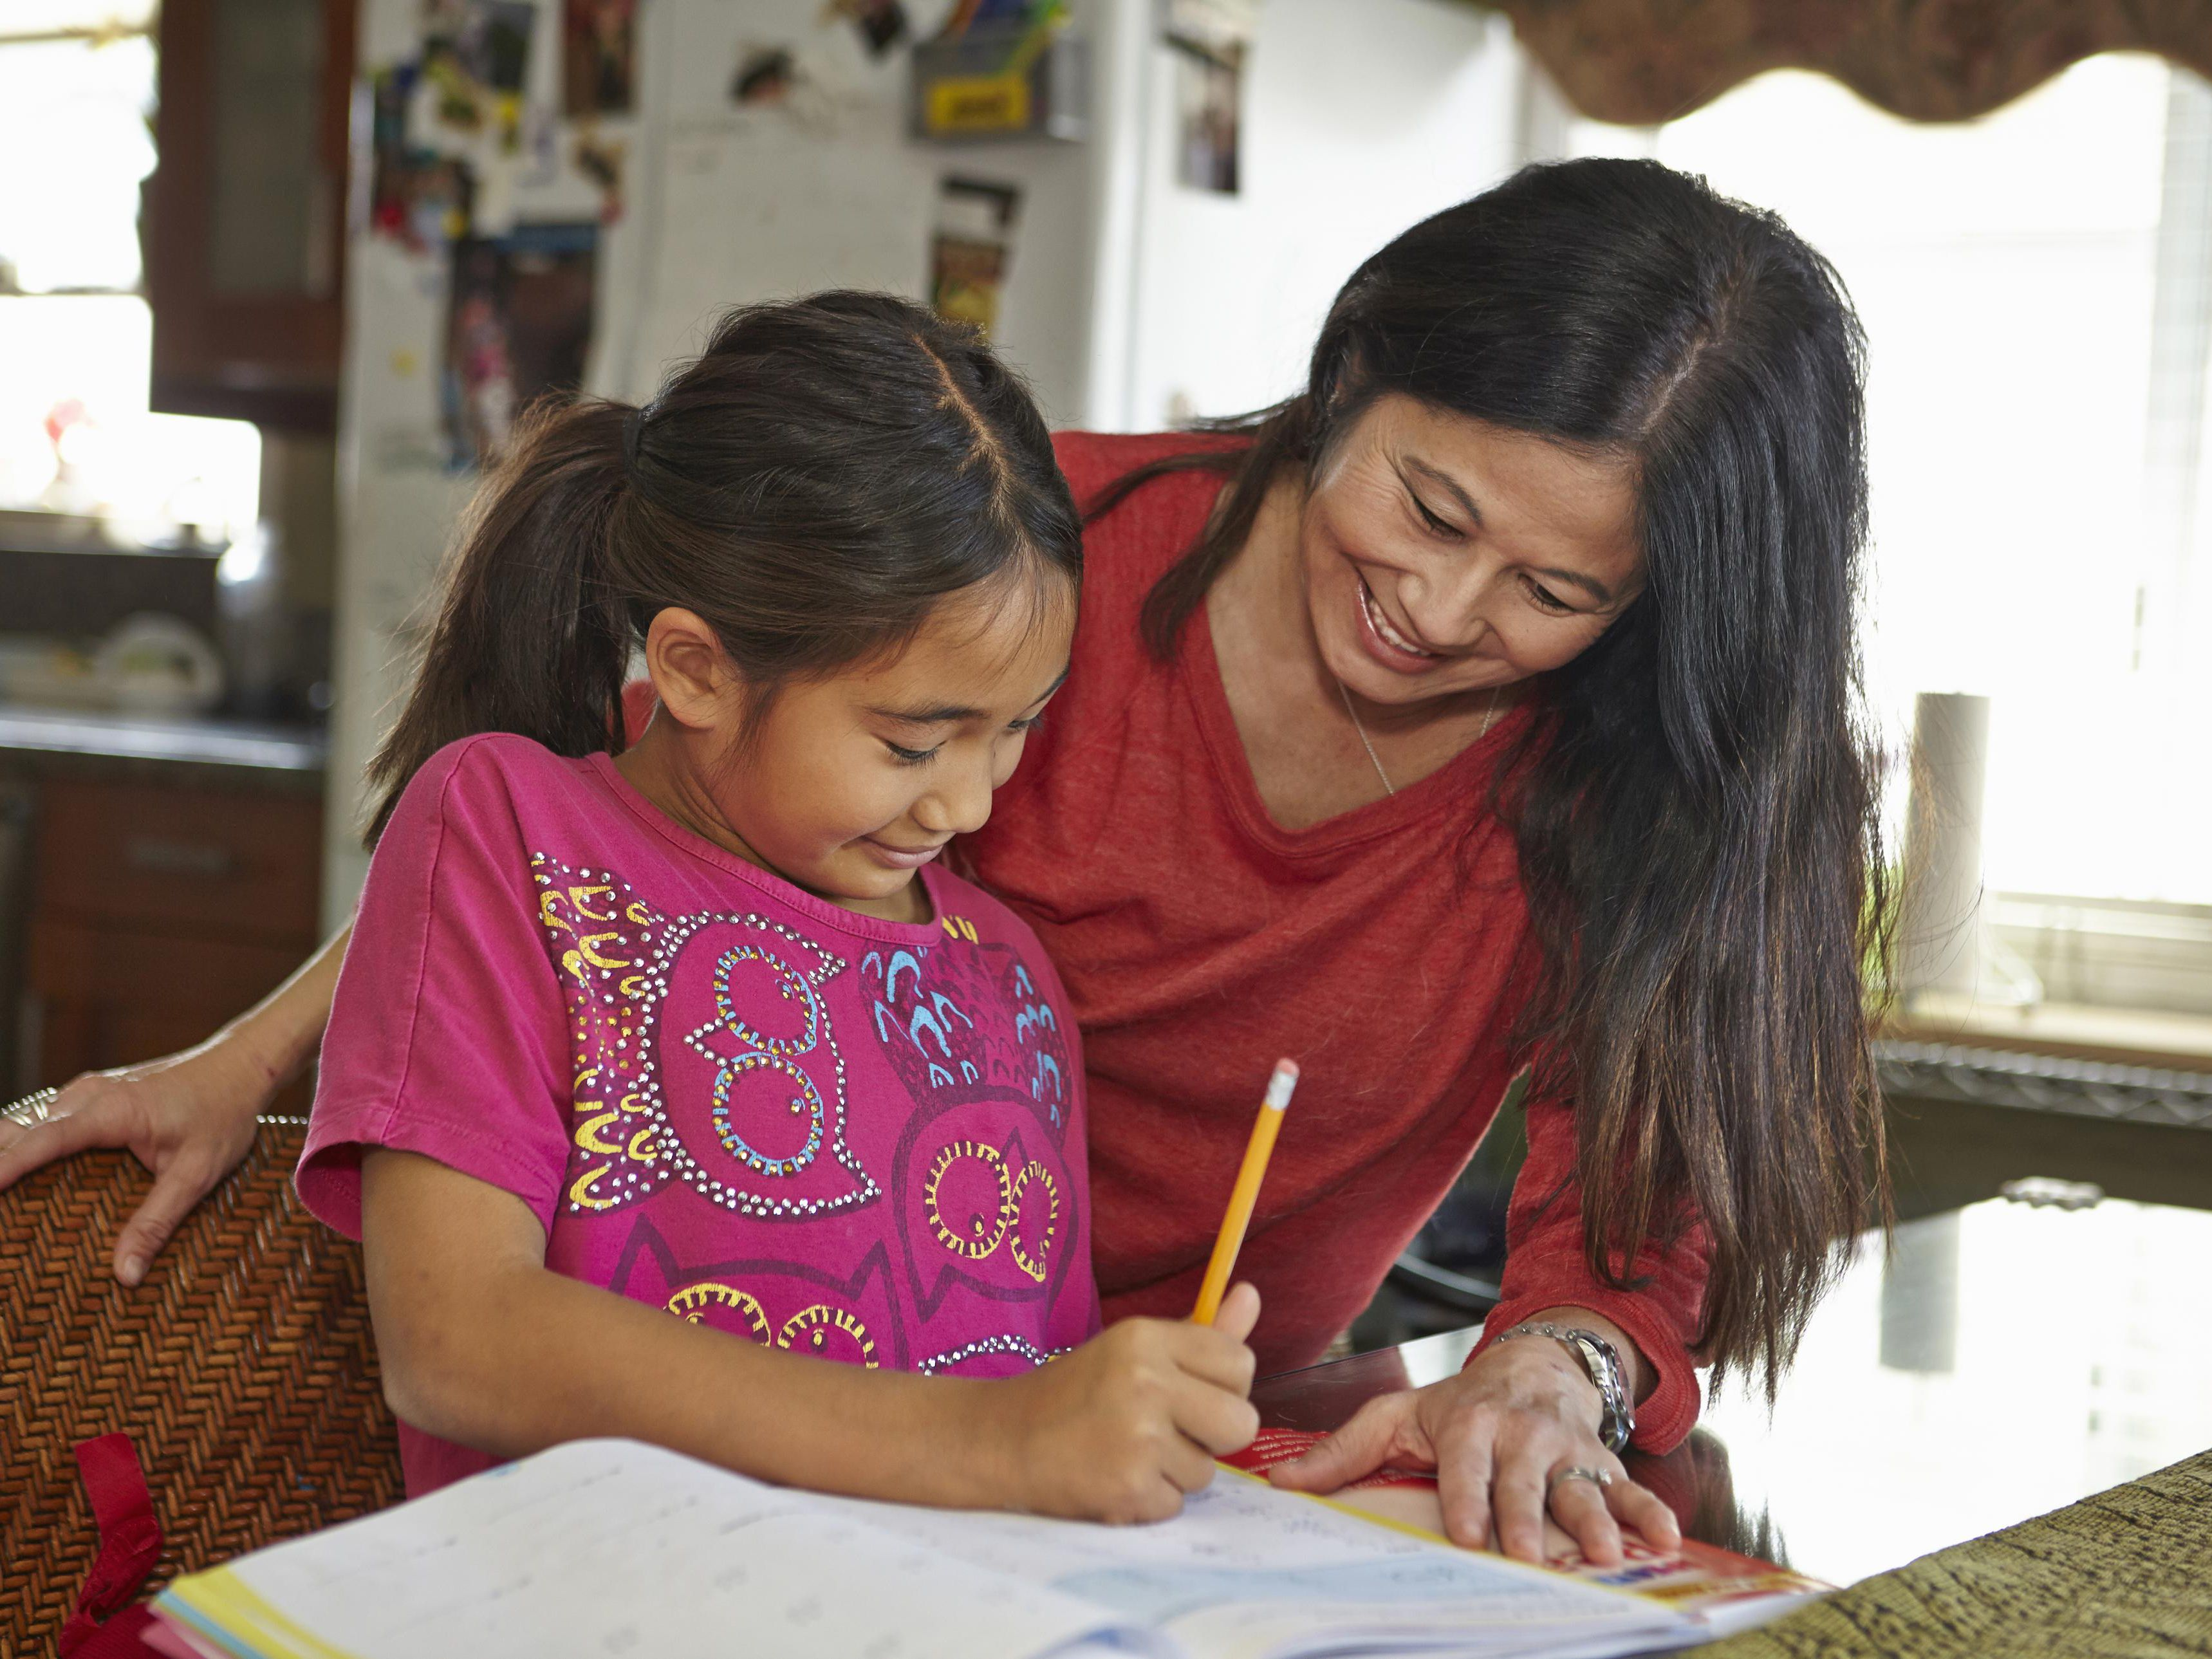 Create a Homework Contract Between Parents and Tweens